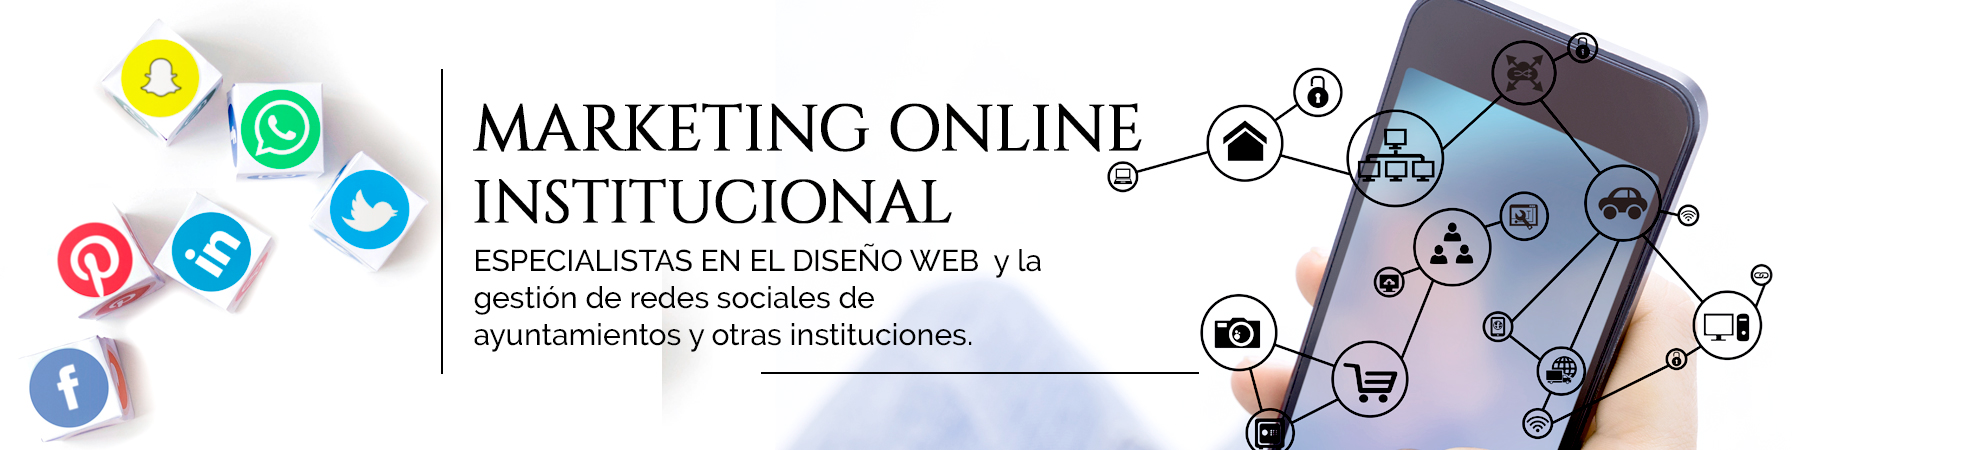 marketing online institucional